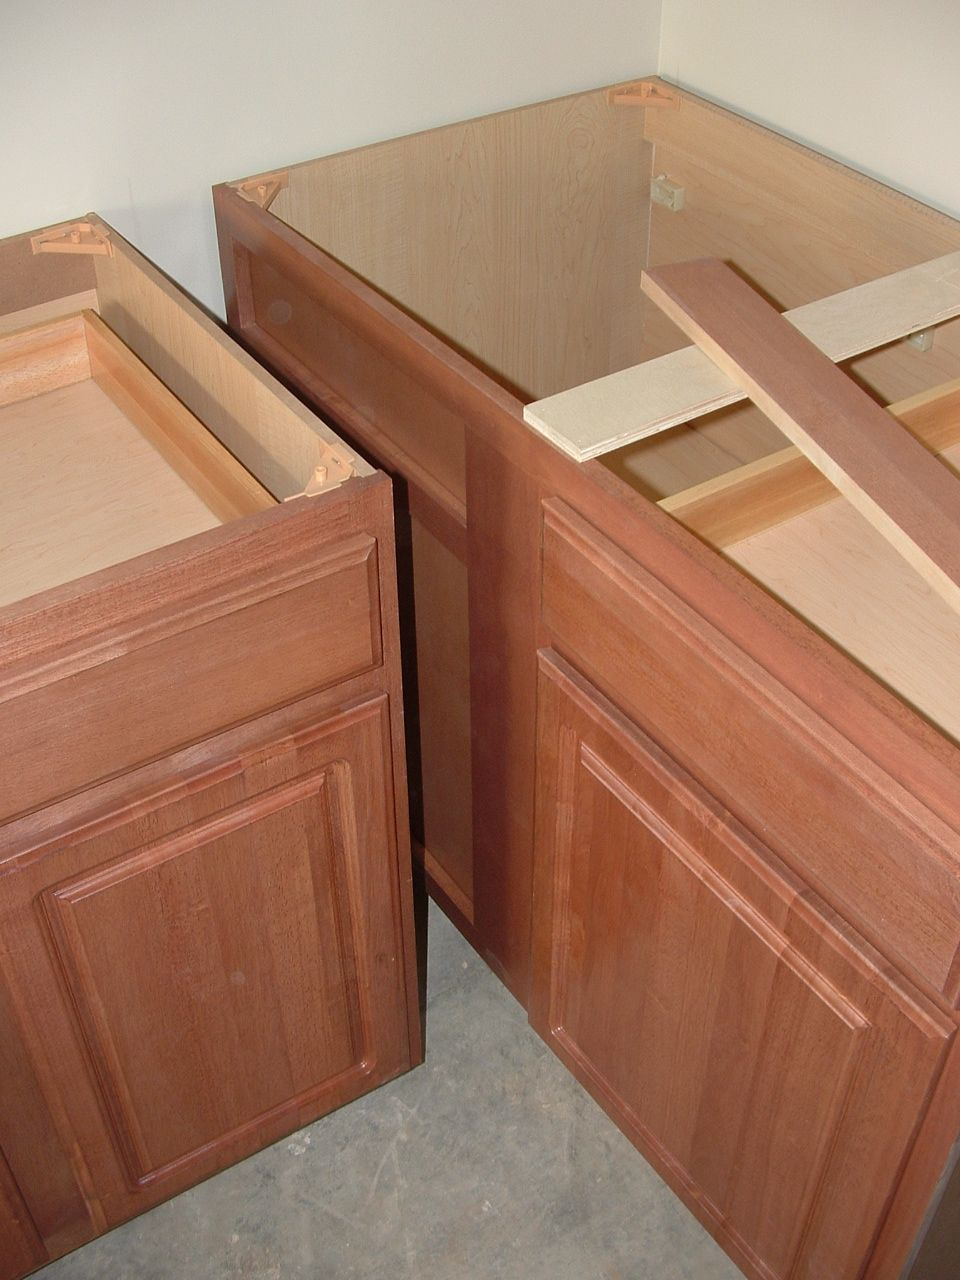 Kitchen Cabinet Filler Ideas Apartments In 2020 Kitchen Cabinets Refacing Kitchen Cabinets Wood Countertops